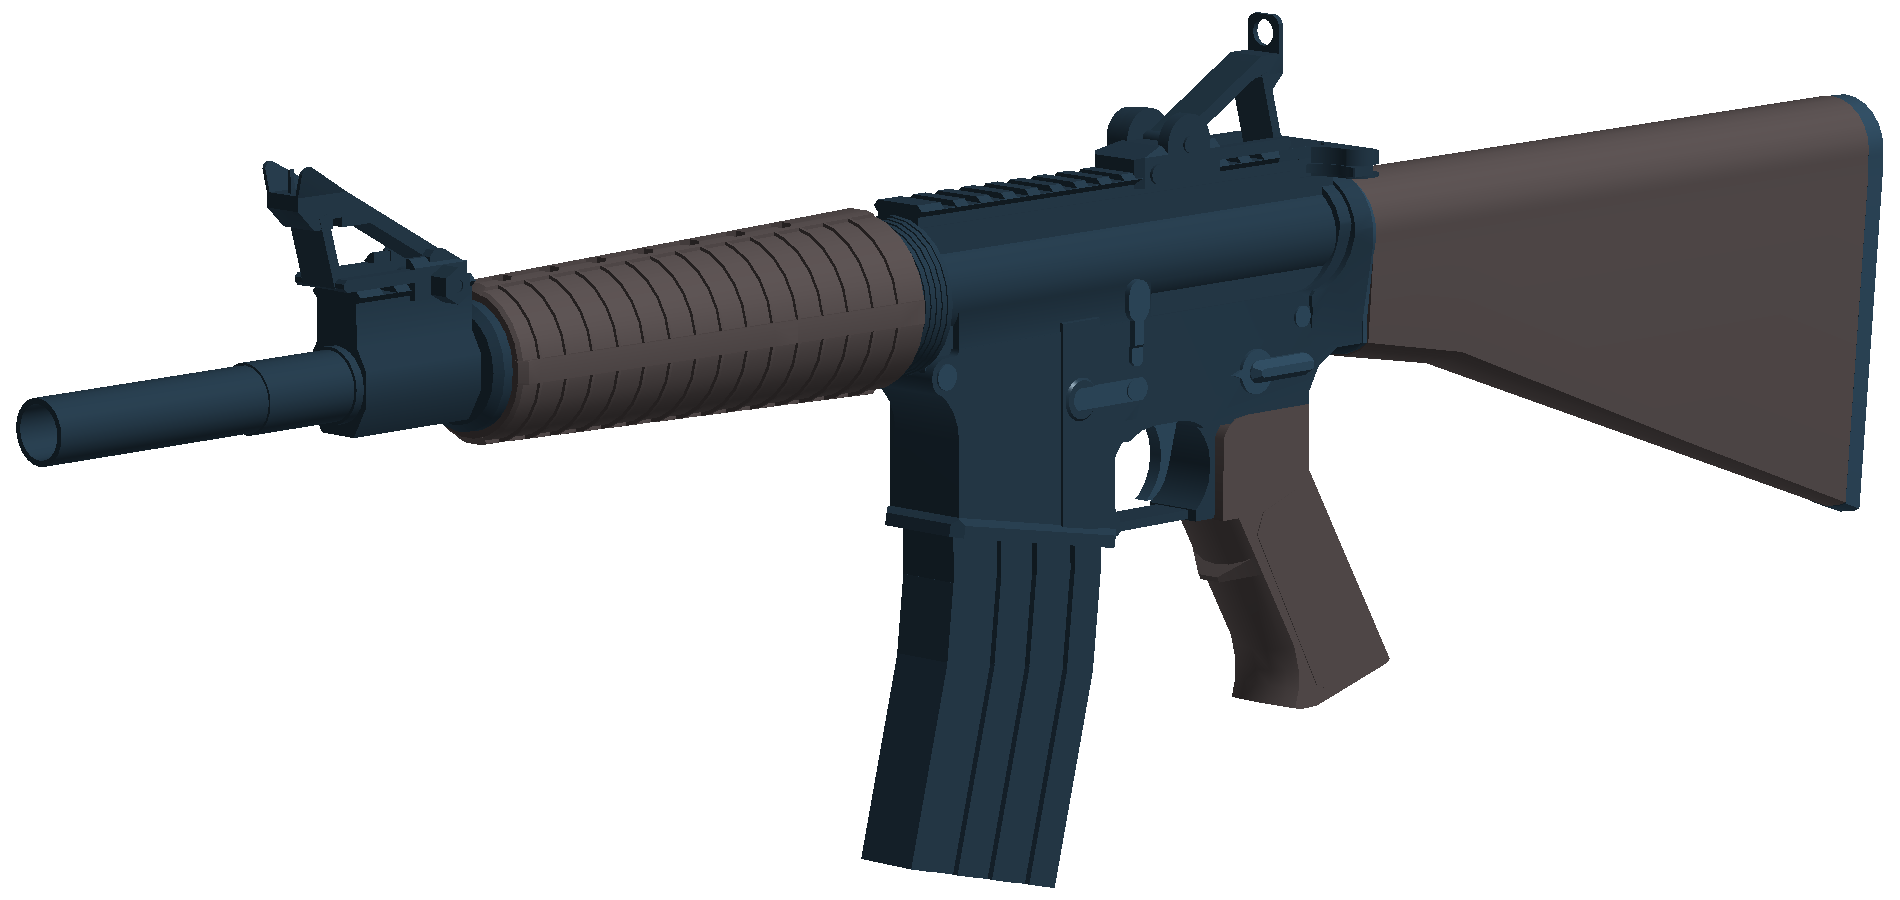 The New G36c Is Bad Roblox Phantom Forces New Update New G36 Models Beowulf Ecr Phantom Forces Wiki Fandom